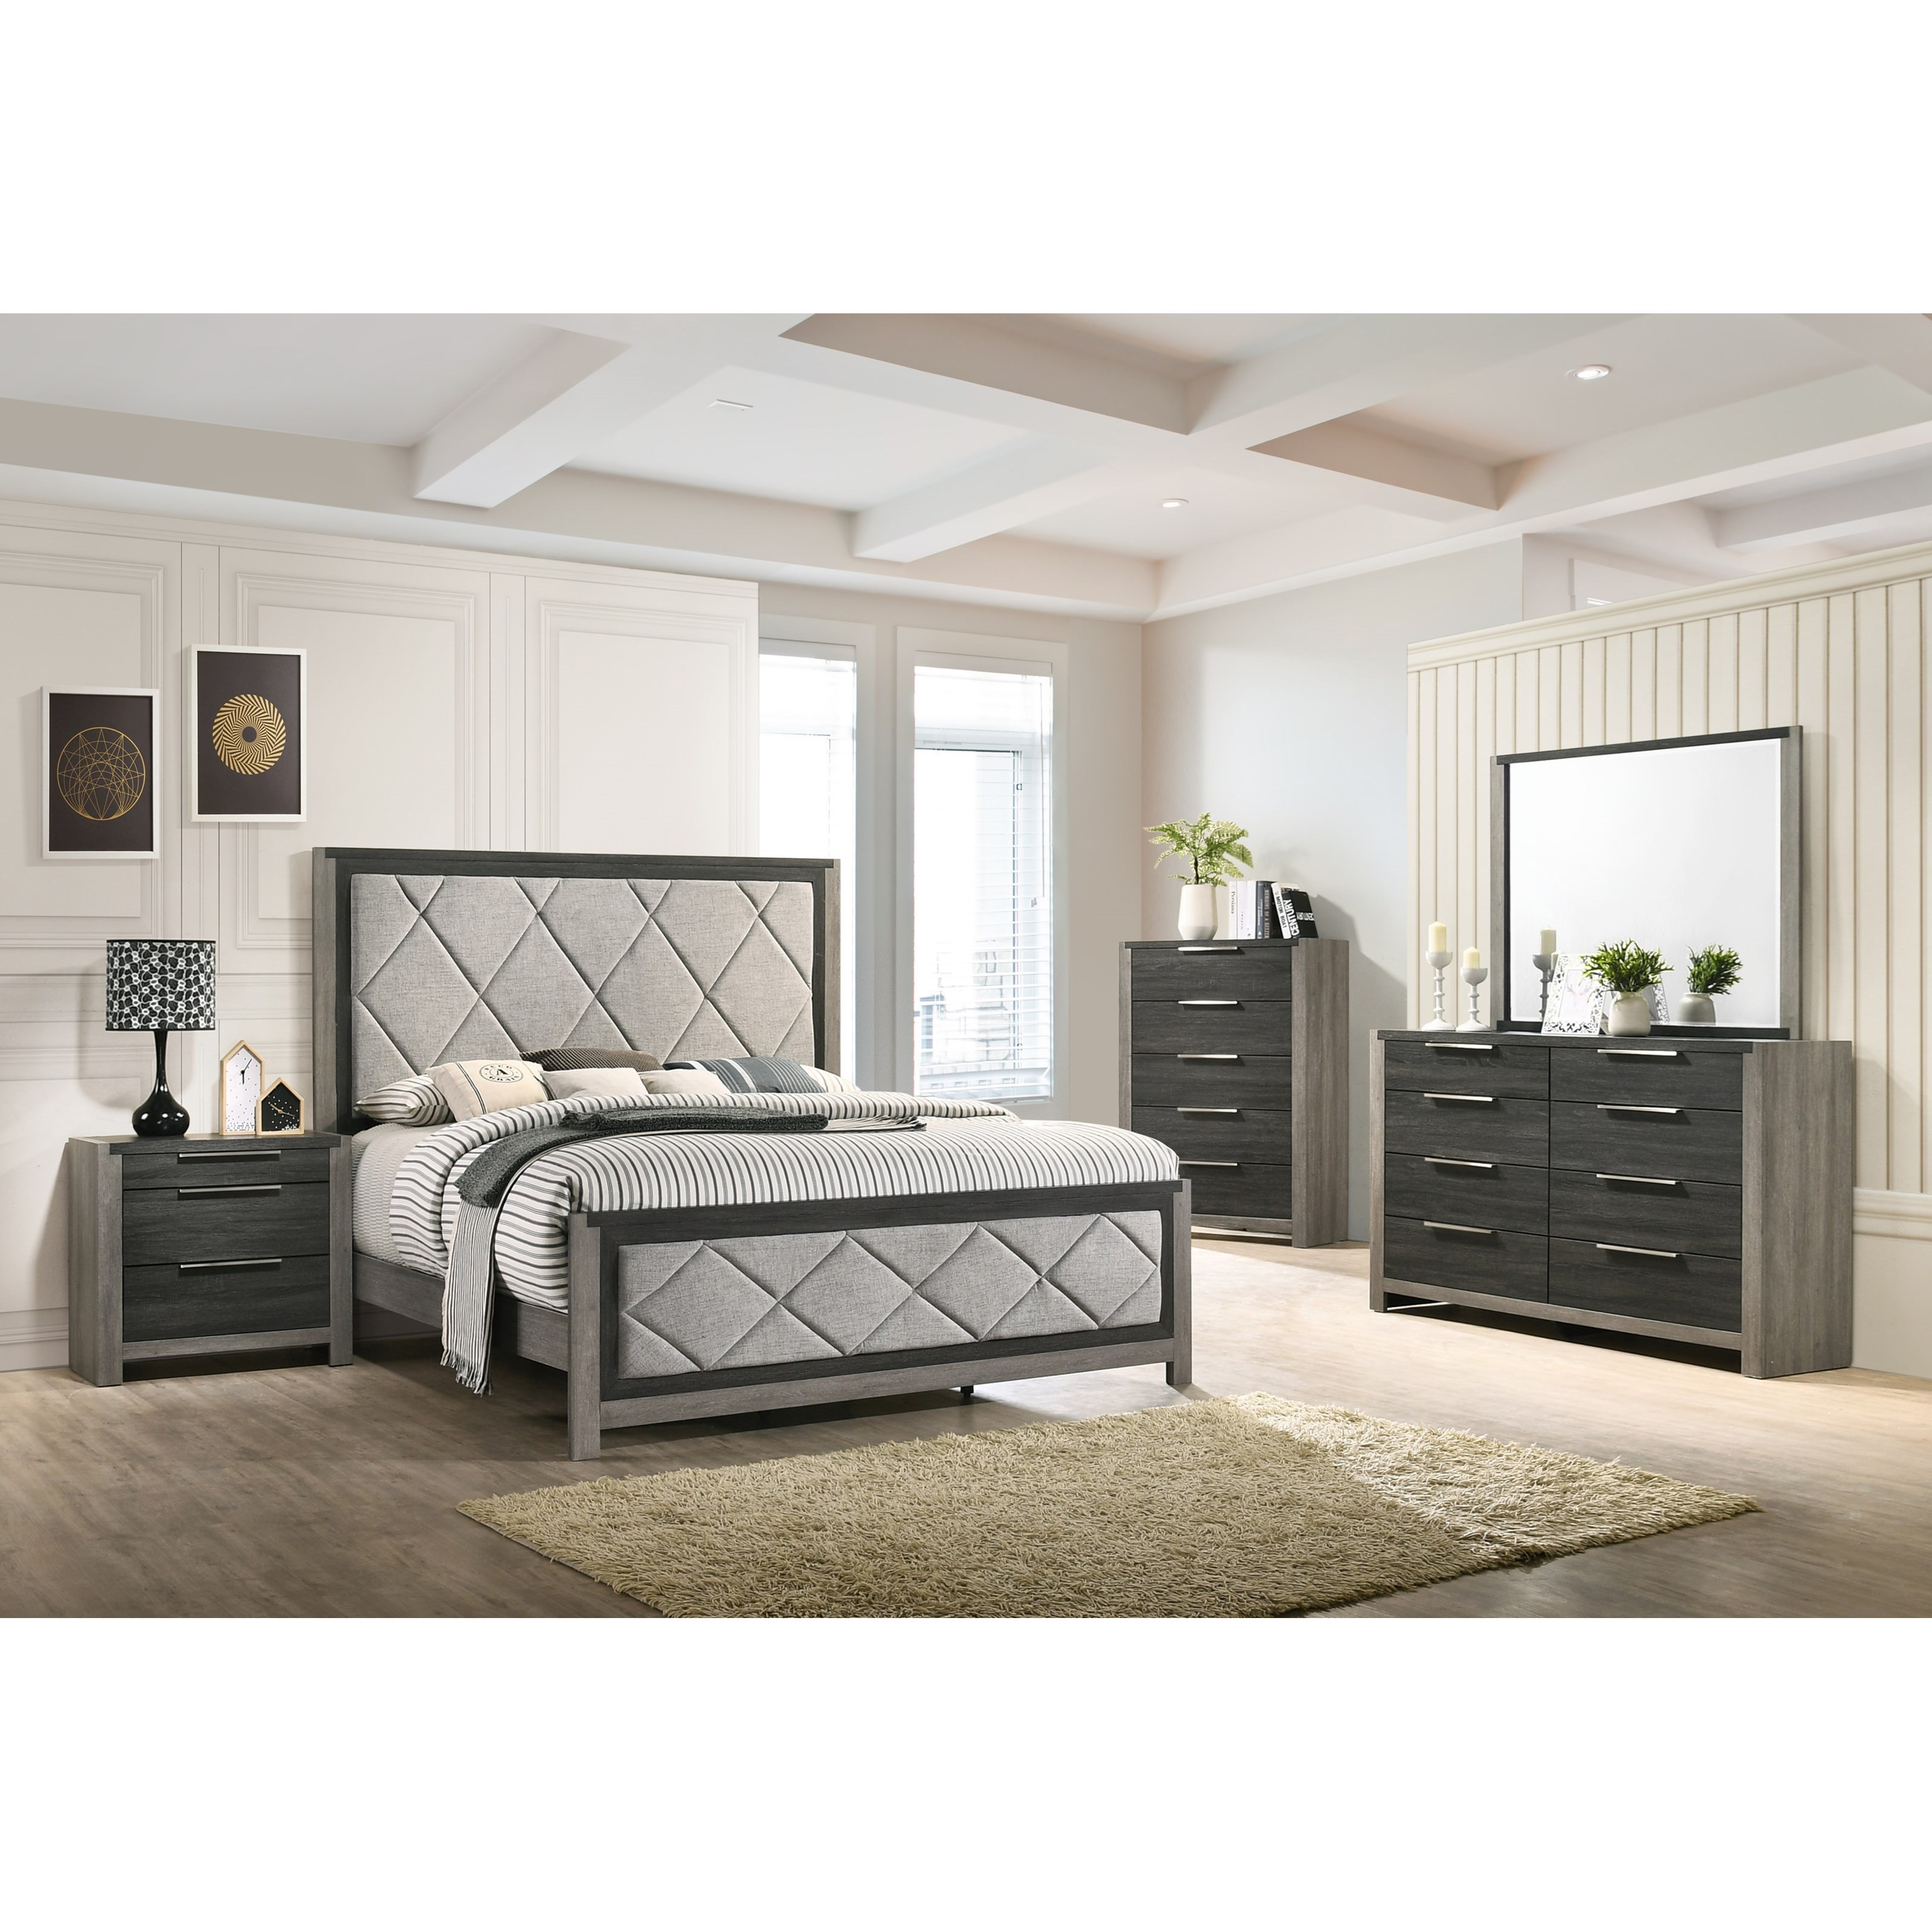 Carter 6 Piece Queen Bedroom by Lane at Household Furniture